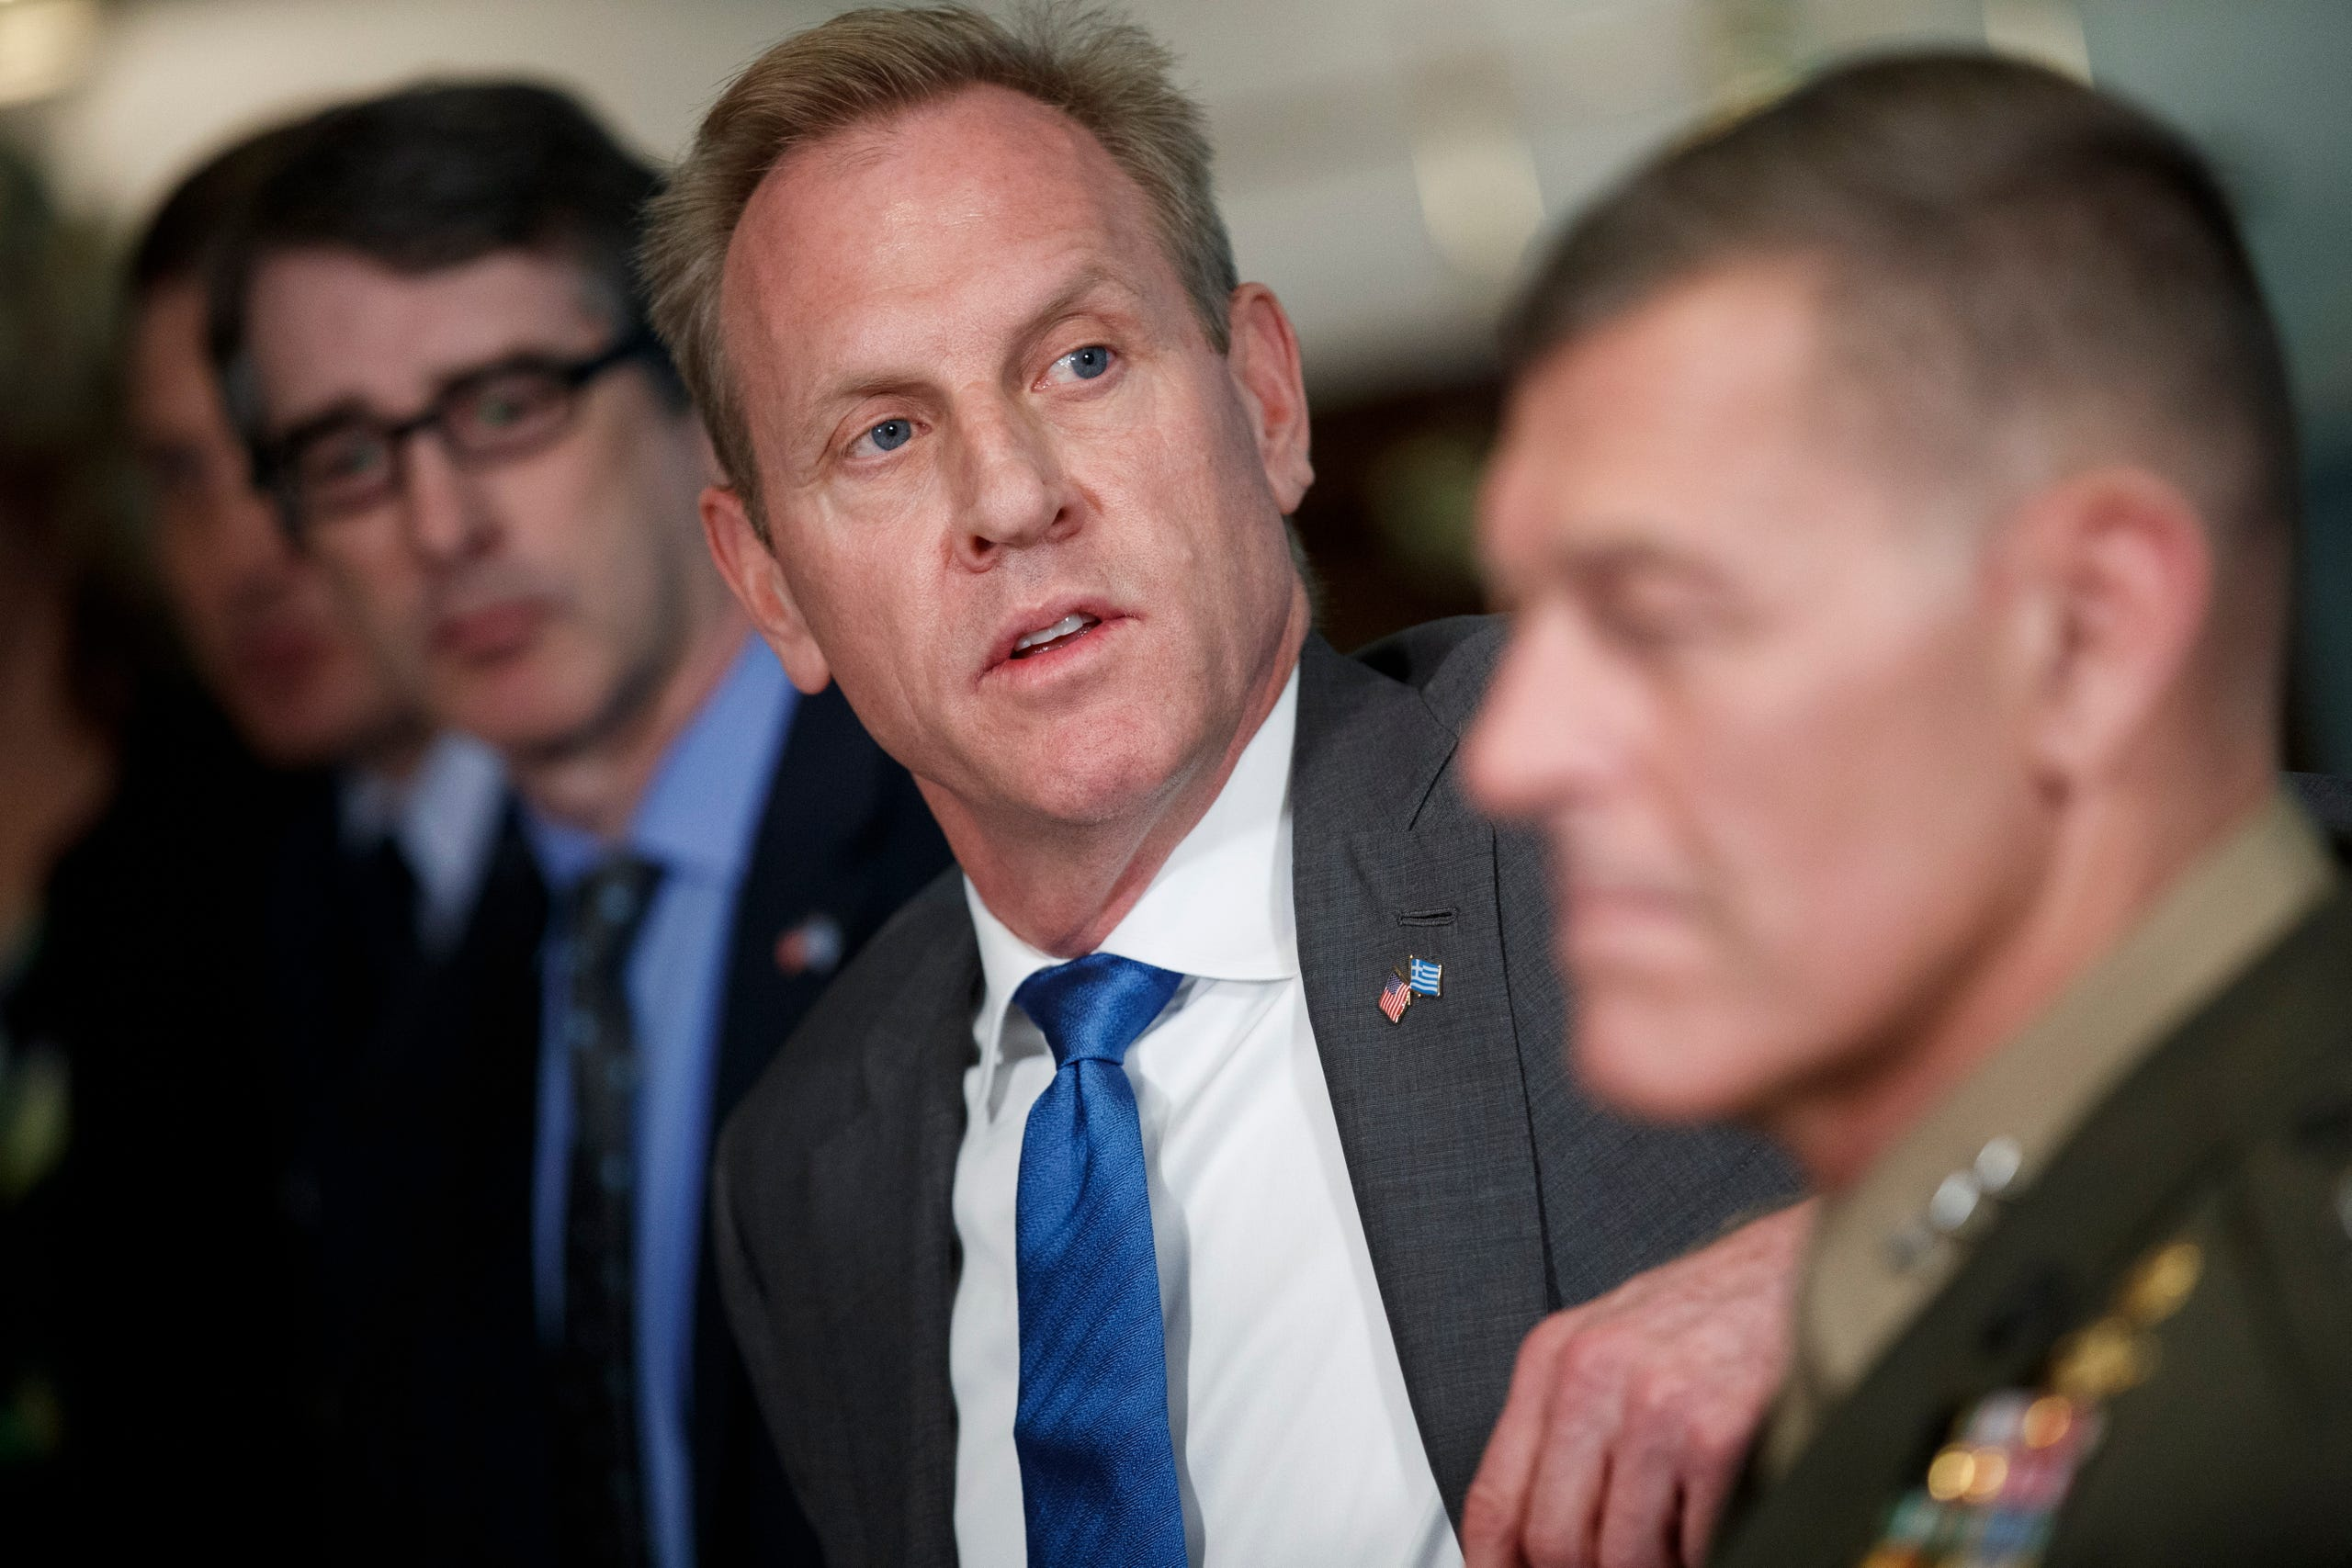 """Acting Secretary of Defense Patrick Shanahan (C) delivers remarks during a meeting with Greek Minister of Defense Evangelos Apostolakis at the Pentagon on June 7, 2019.In a June 18 tweet, the president saidShanahan did """"a wonderful job"""" but wanted to """"devote more time to his family."""" The announcement came about an hour after USA TODAYdetailedan FBI examination of a 2010 violent domestic disputebetween Shanahan and his then-wife."""